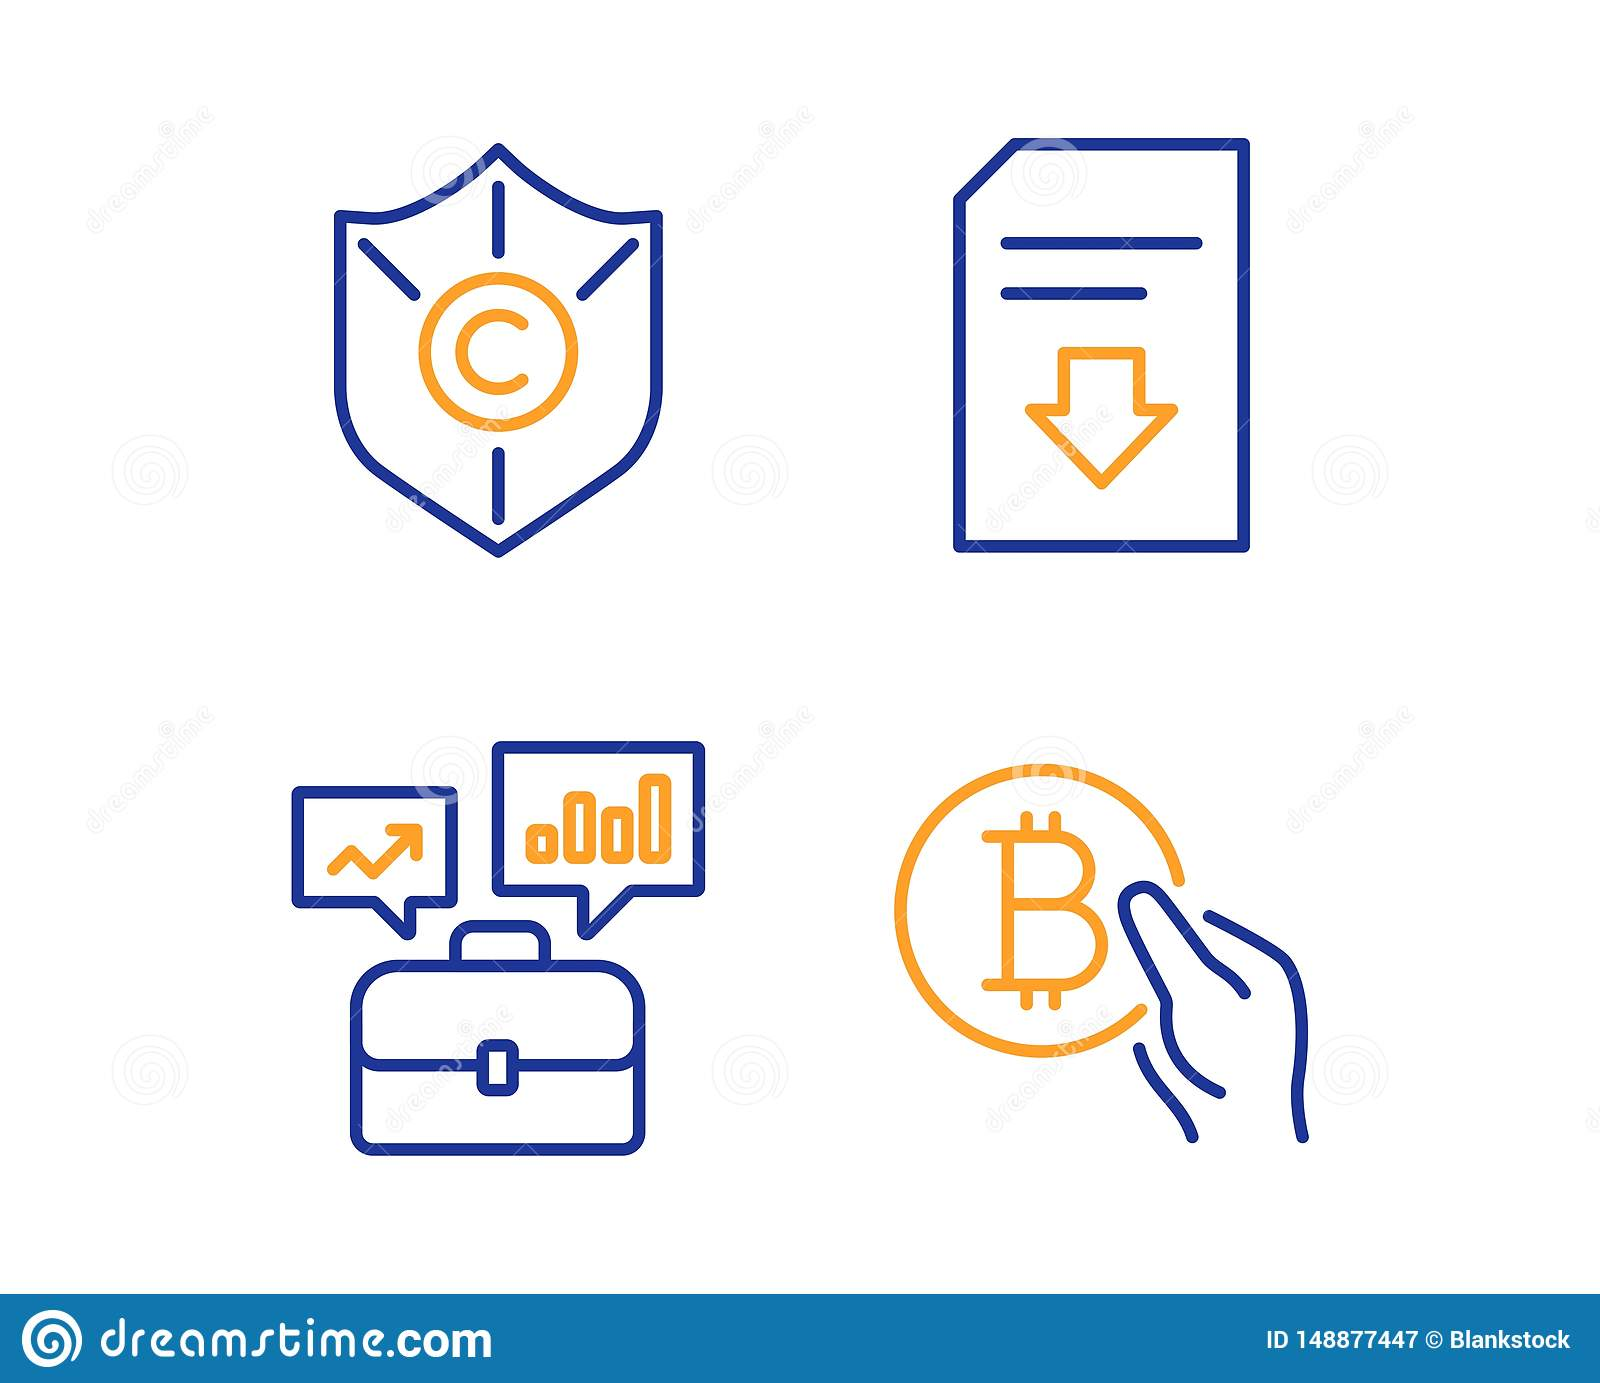 are cryptocurrency logos copyrighted